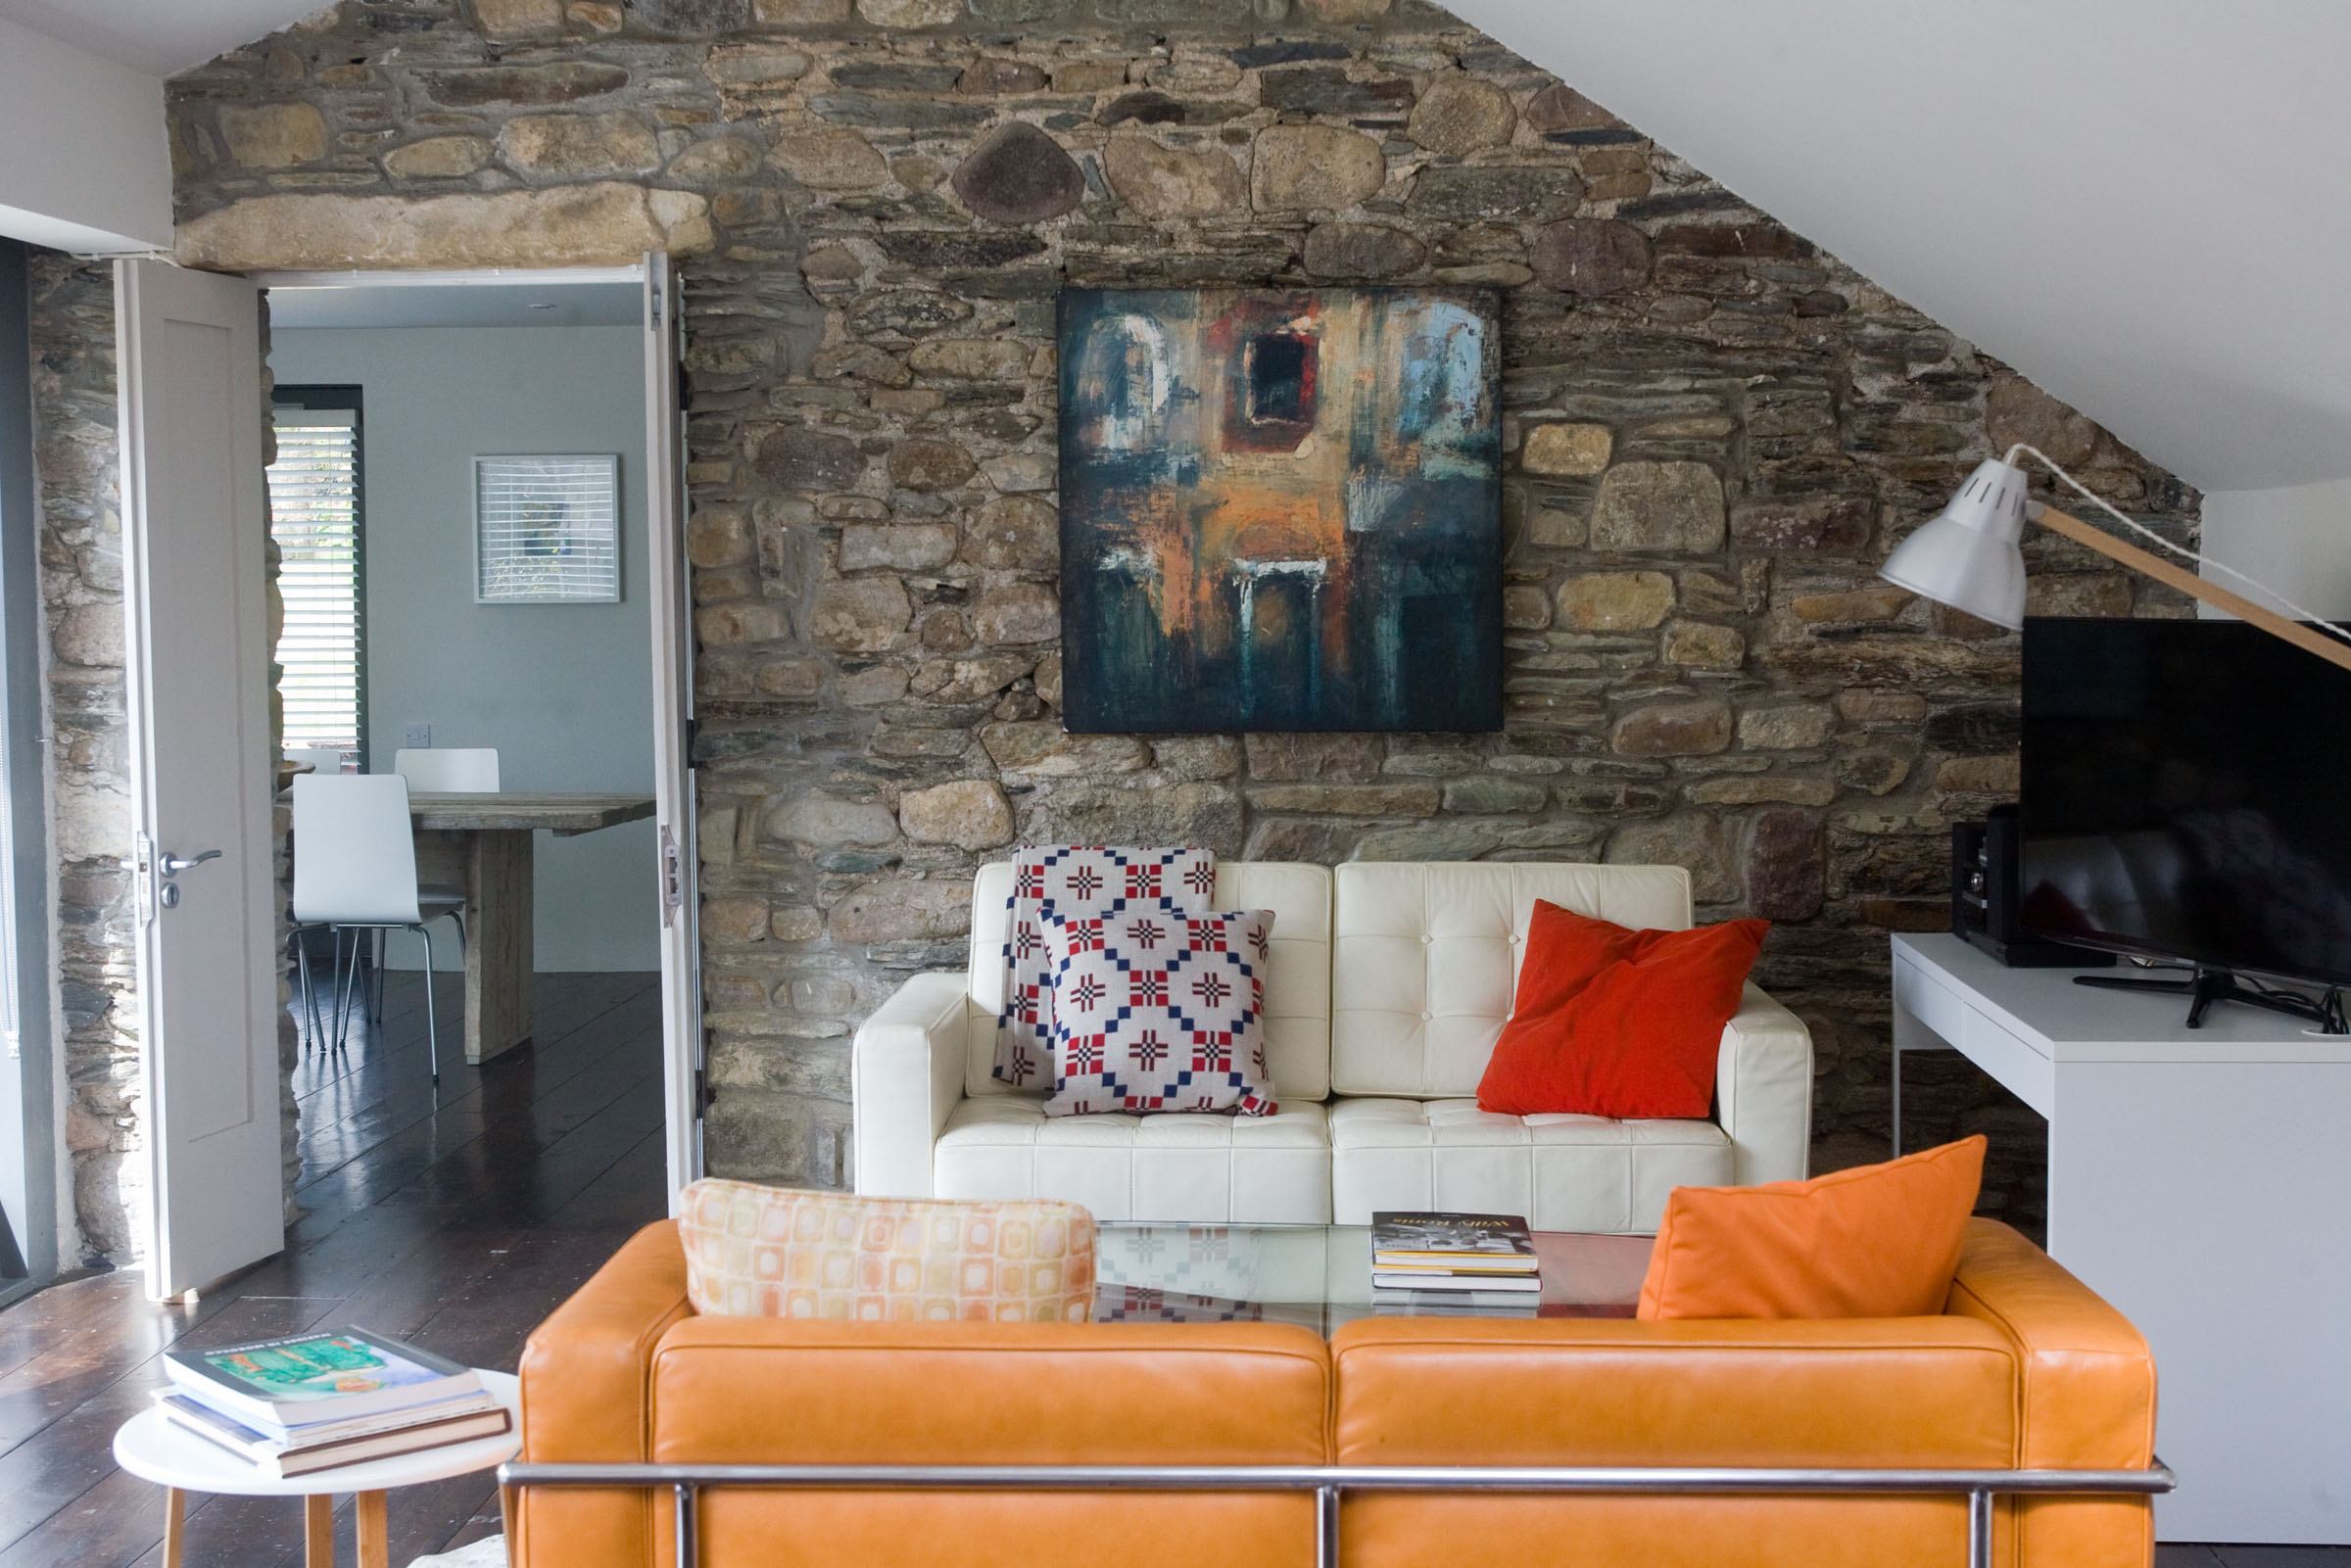 The 10 best apartments in Kilkenny, Ireland   sil0.co.uk